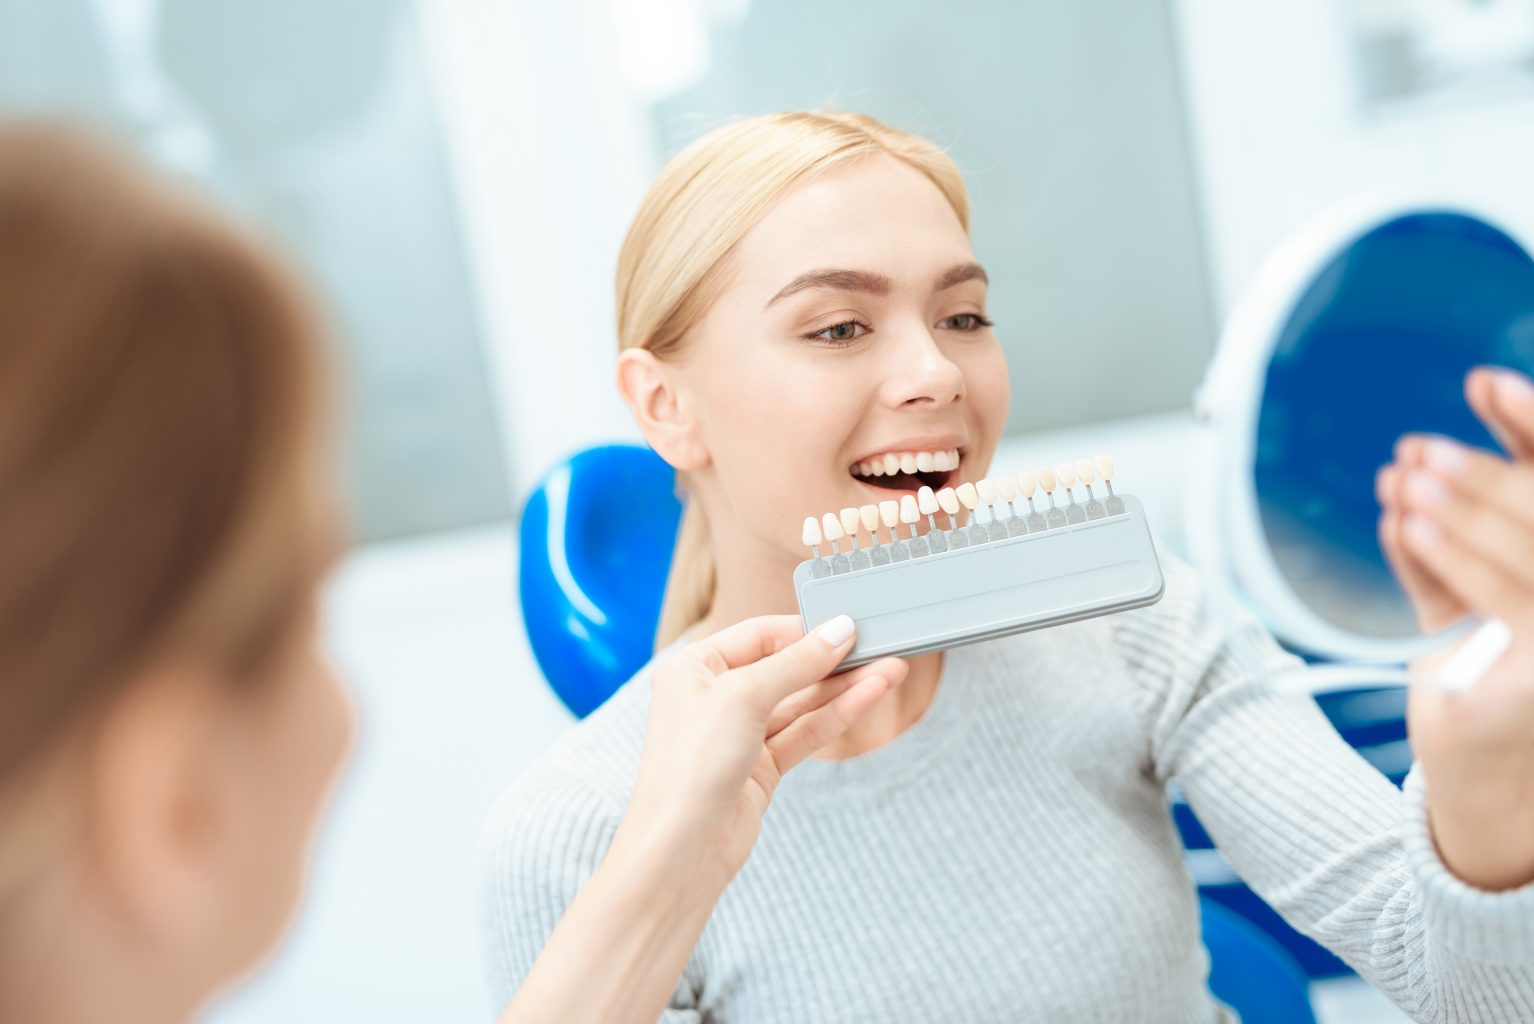 A Woman Came To See A Dentist For Teeth Whitening. The Dentist Determines The Color Of Her Teeth